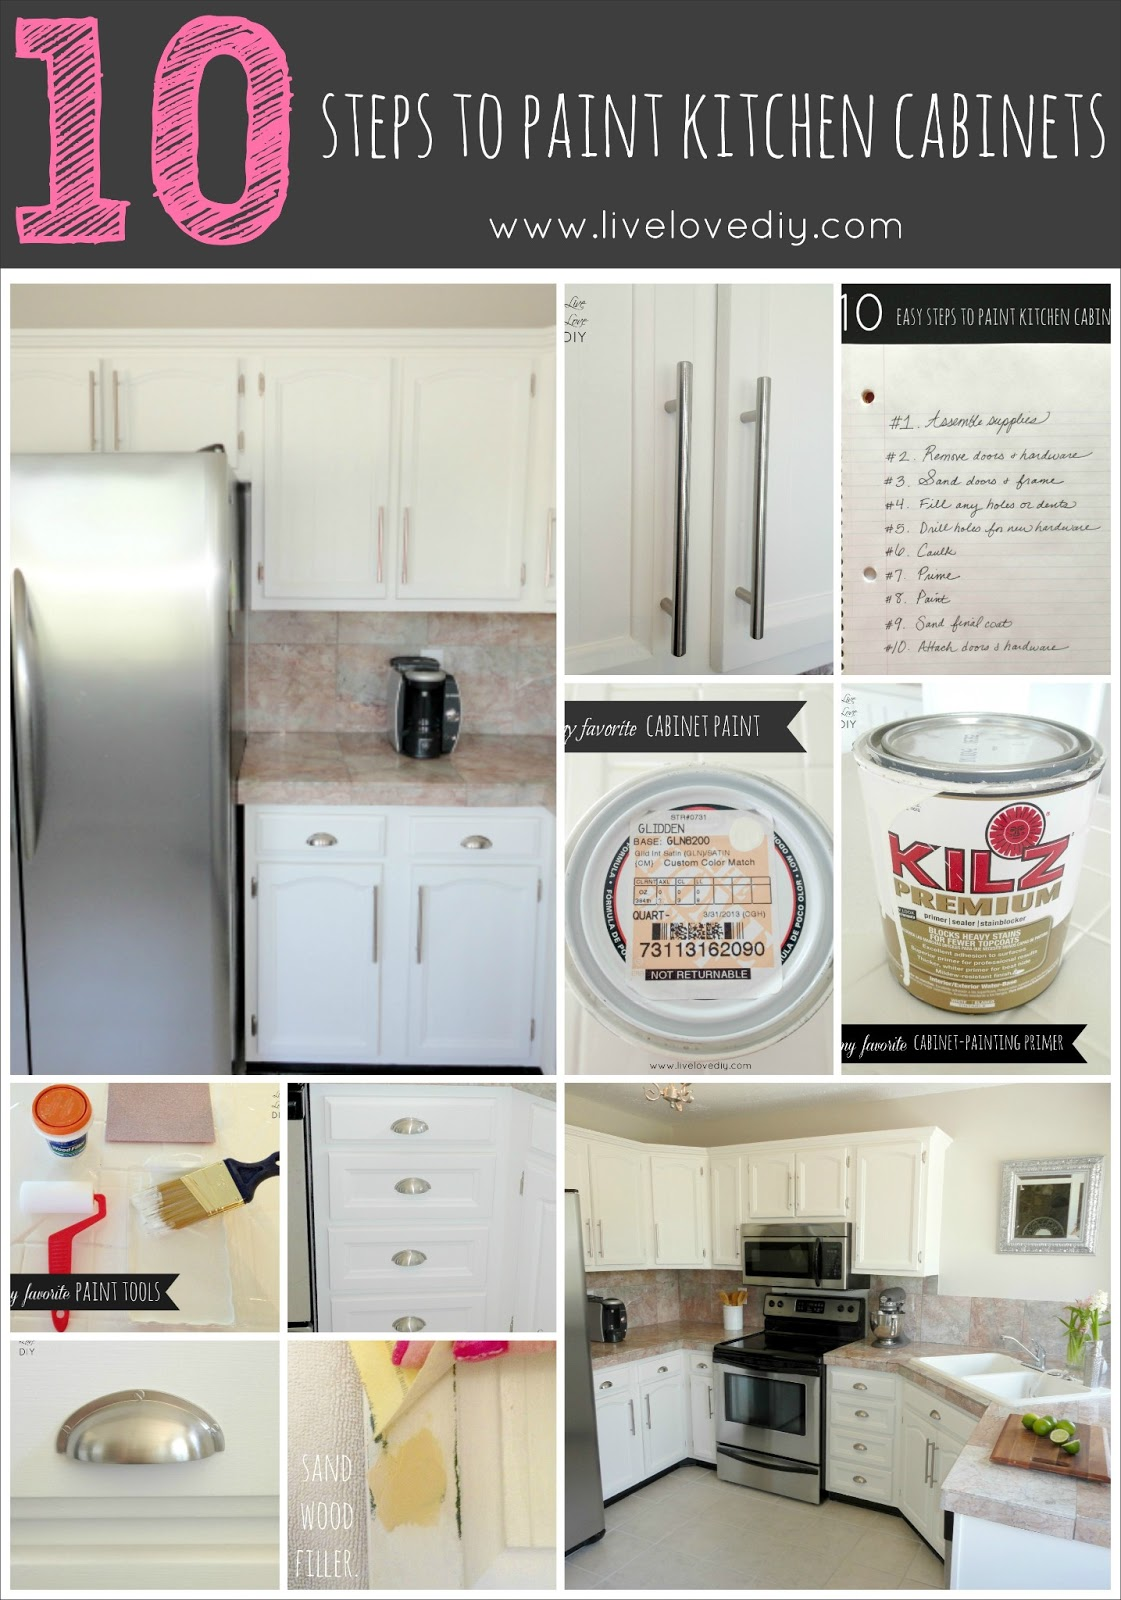 Color Paint For Kitchen Livelovediy How To Paint Kitchen Cabinets In 10 Easy Steps